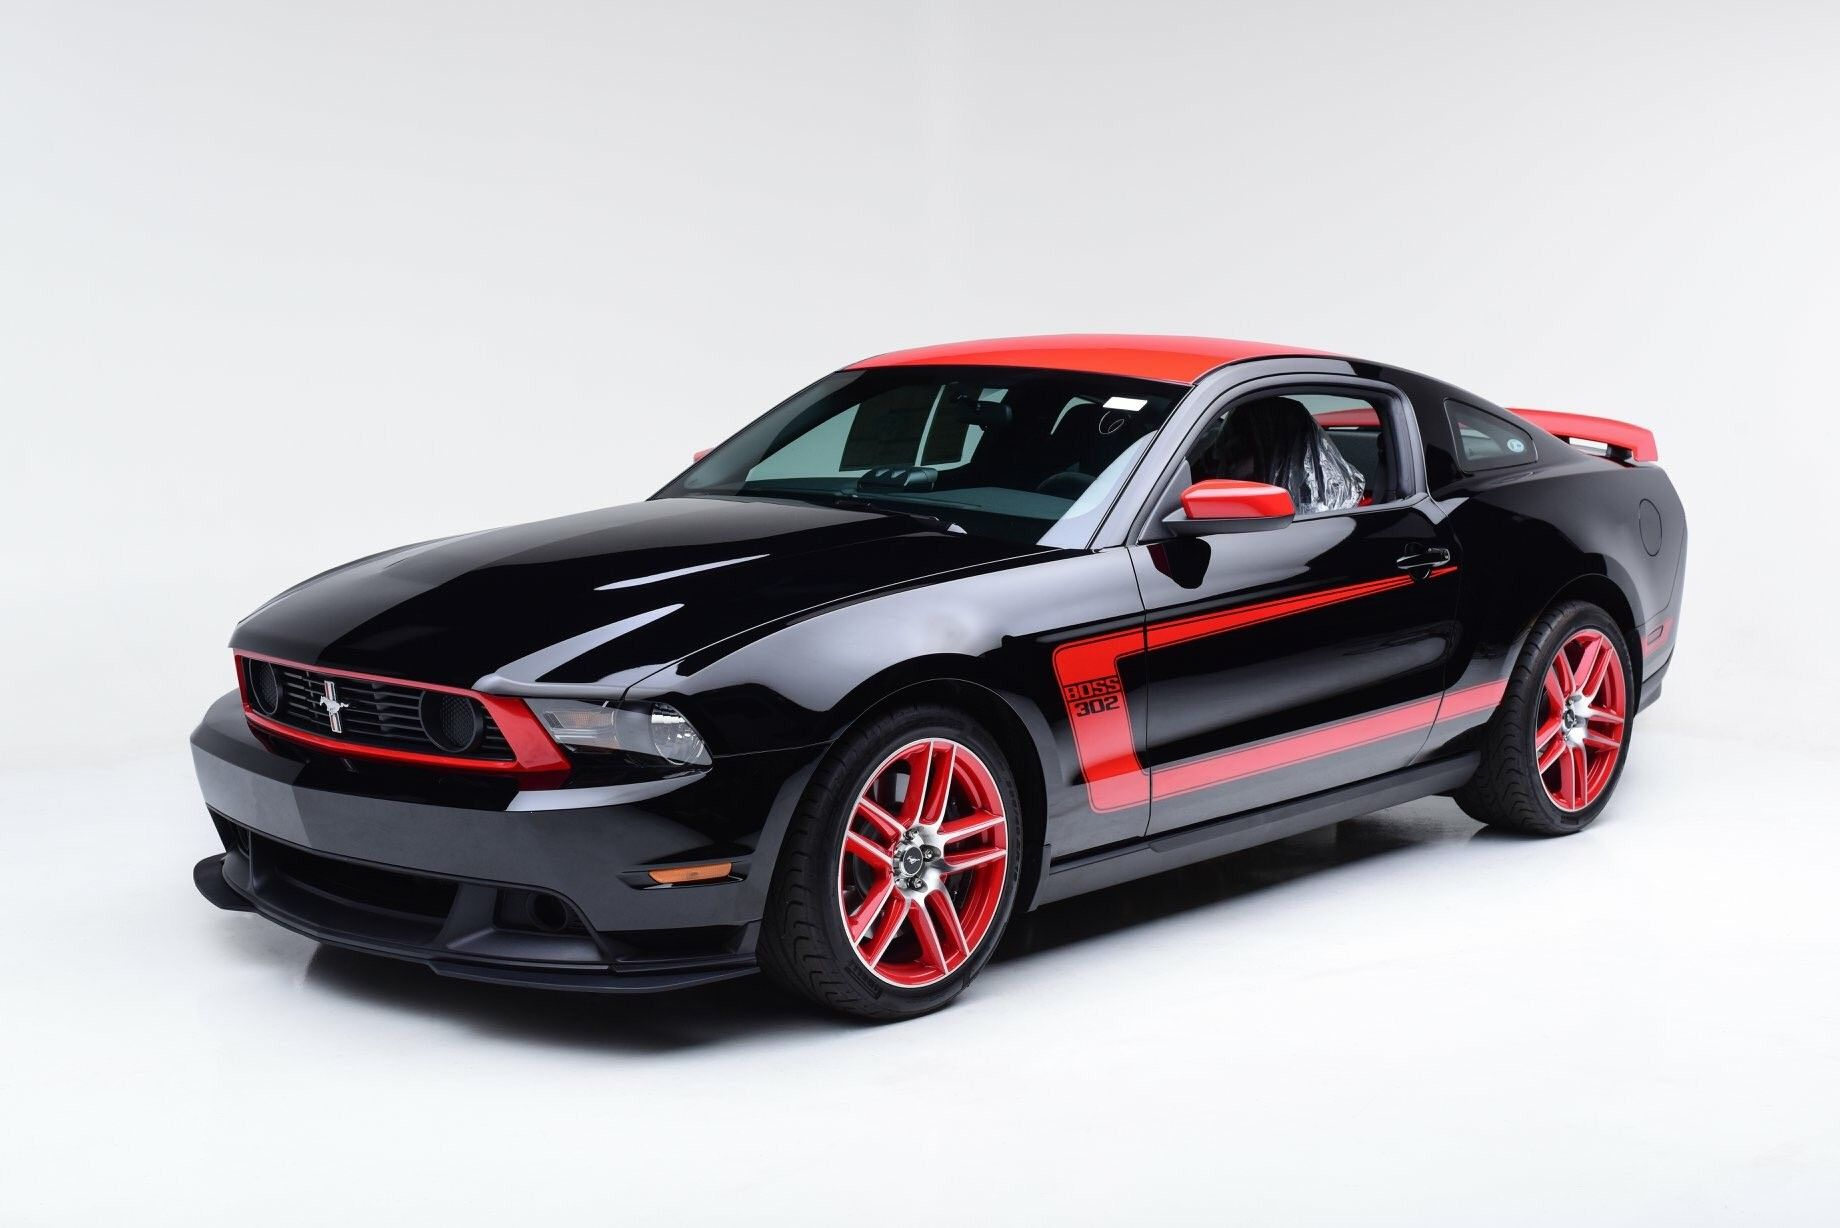 2012 Ford Mustang 2012 ford mustang, Mustang boss 302